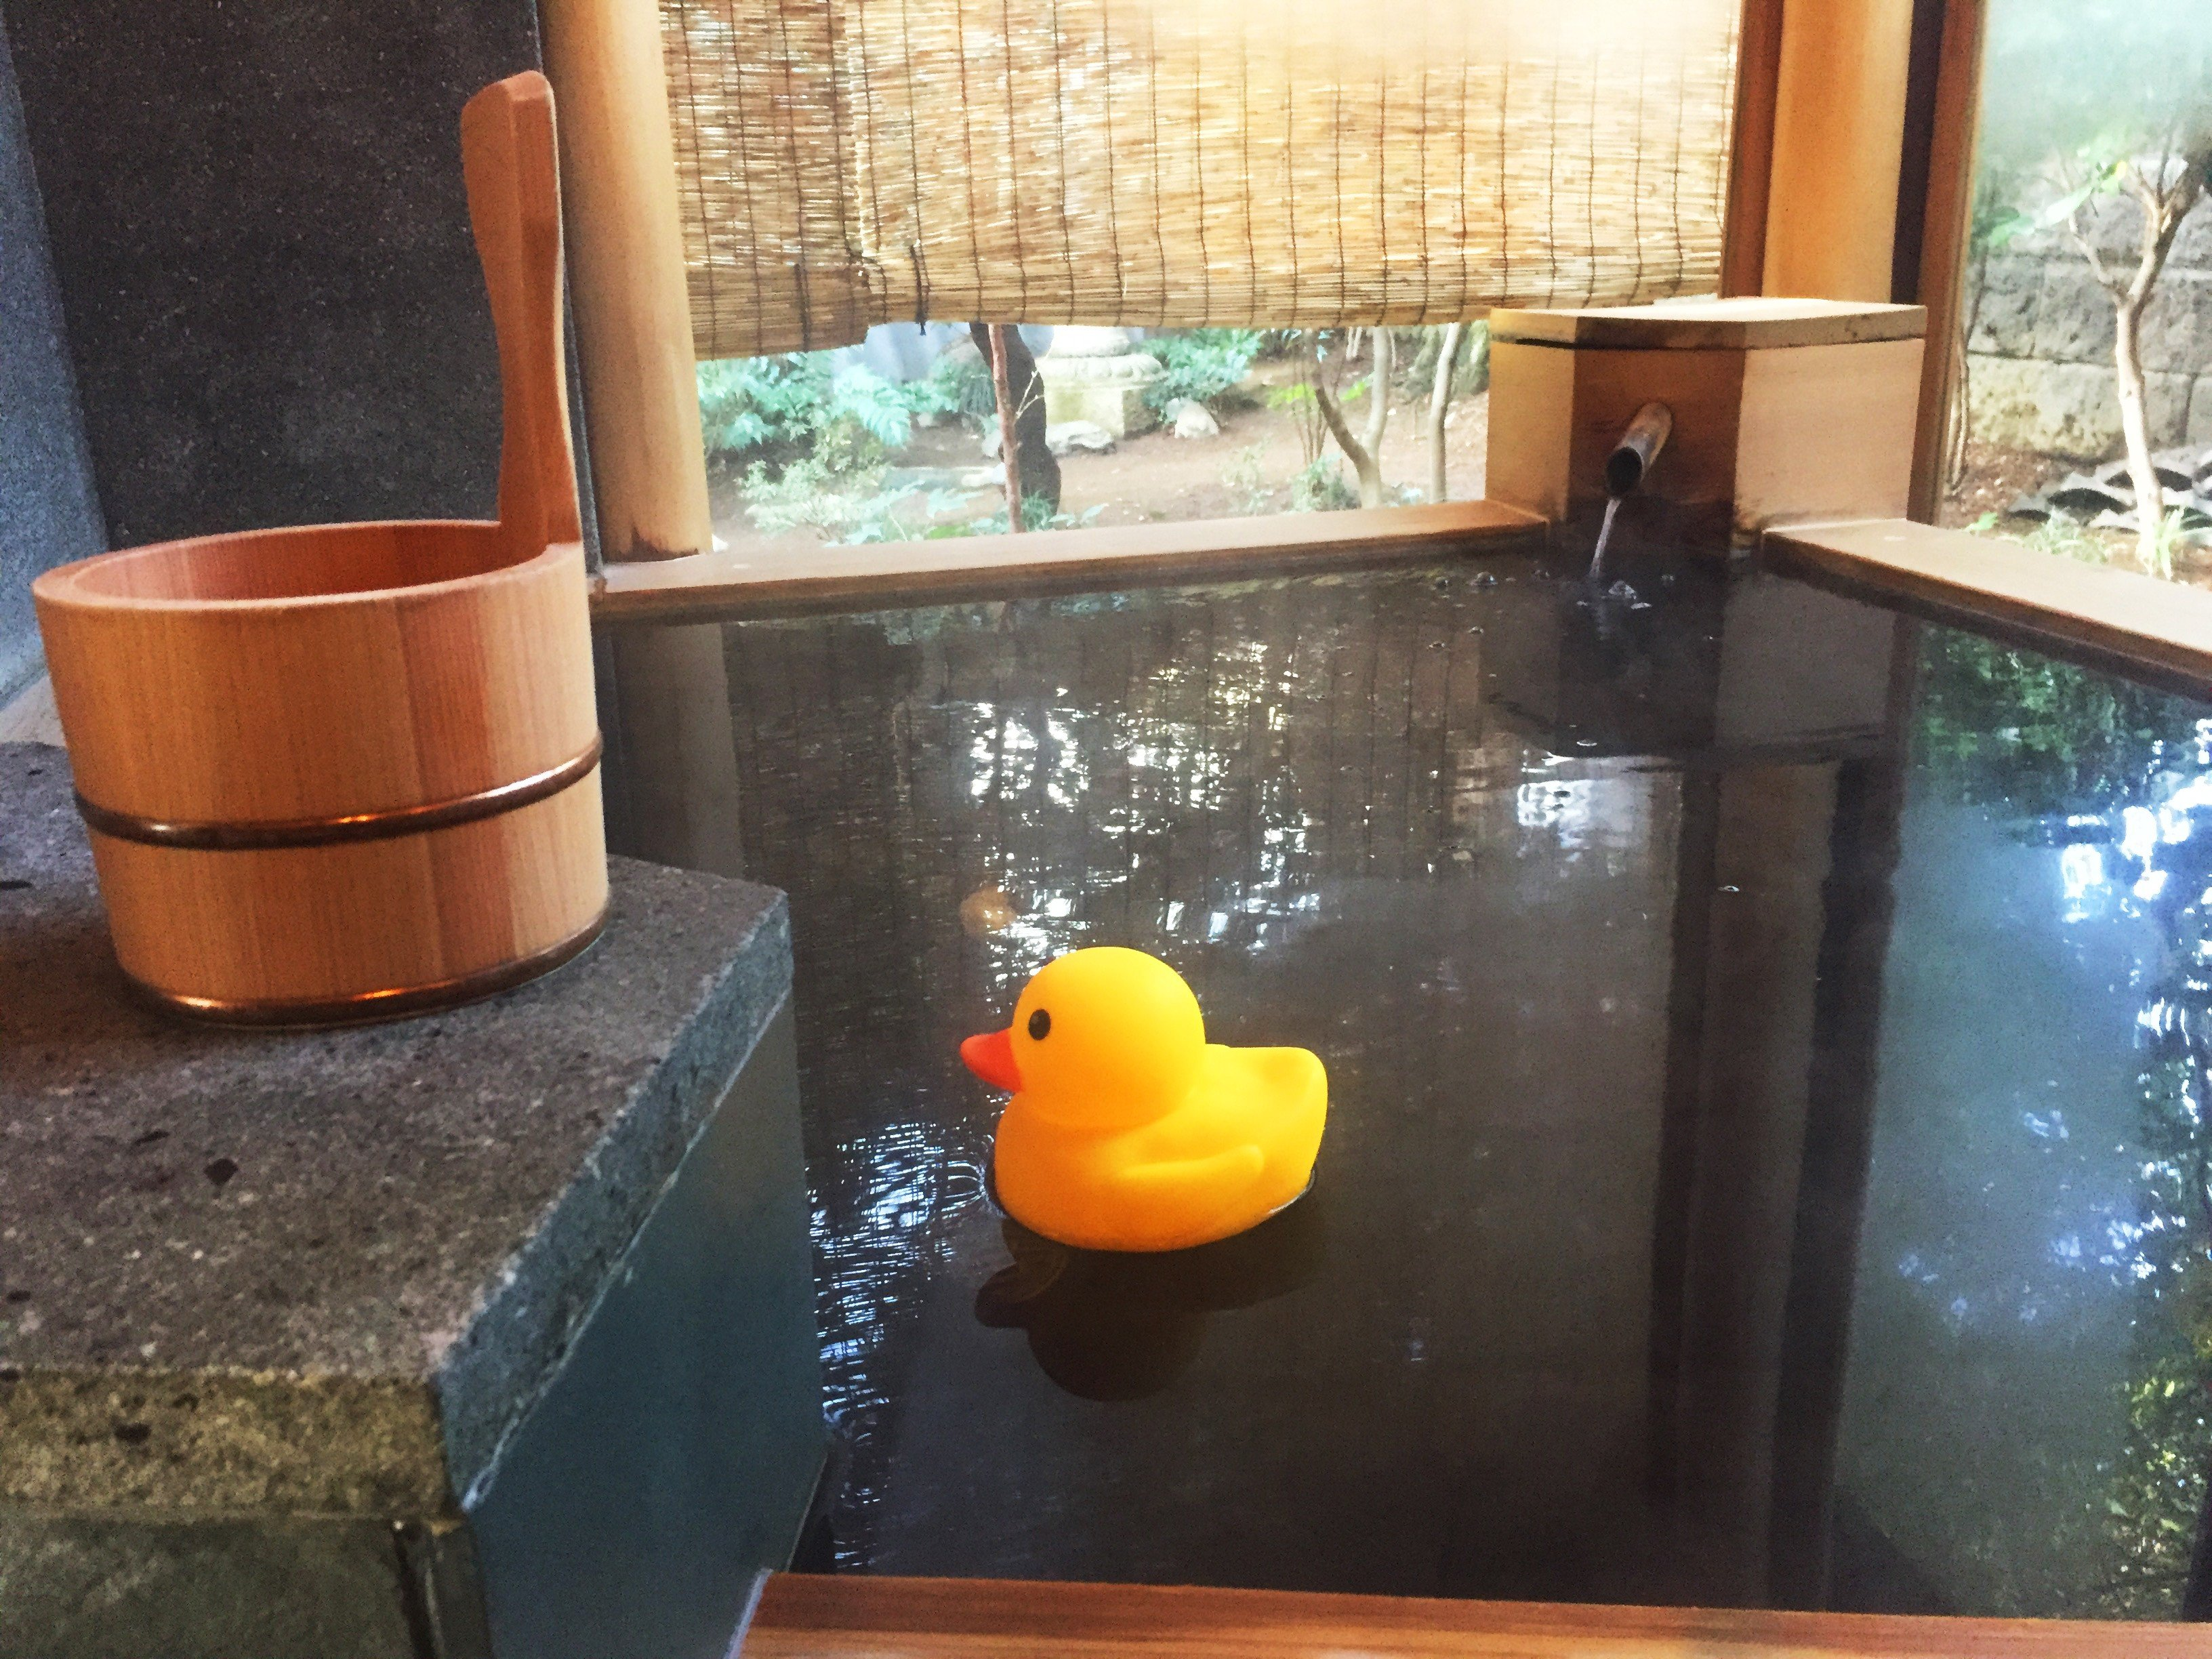 6 of the best private hot spring onsens in Japan to soak your troubles away